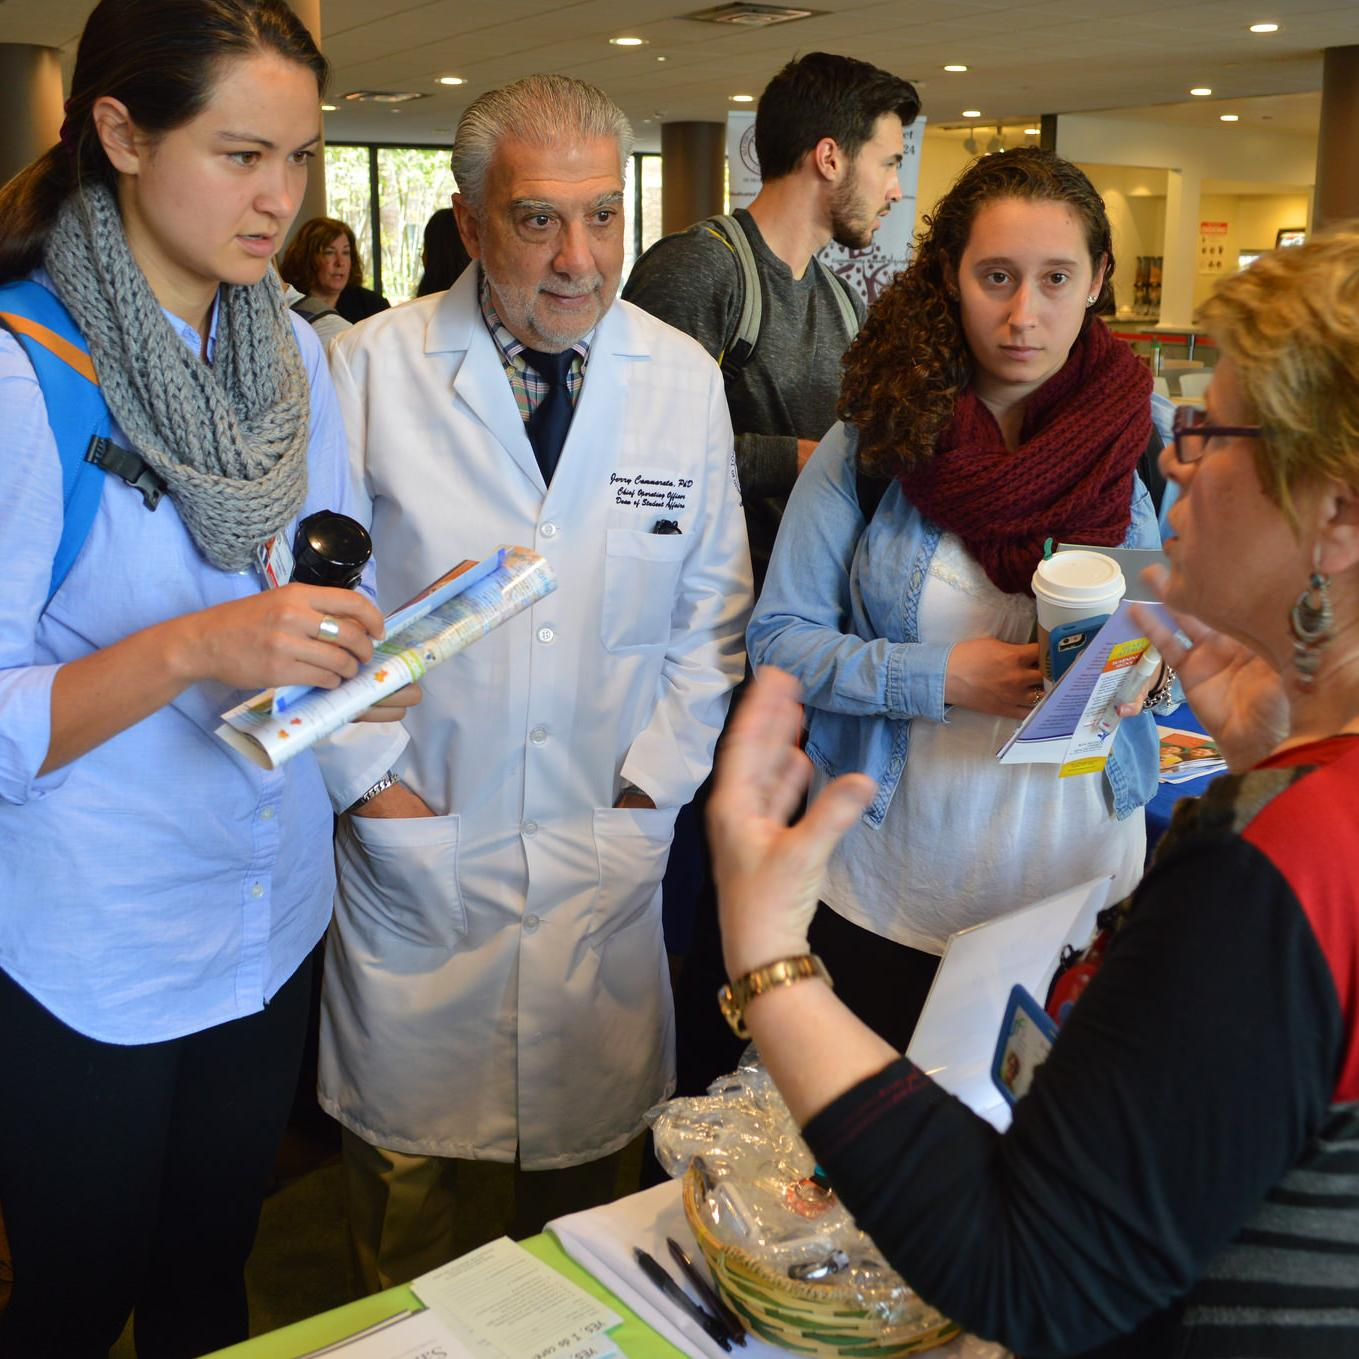 TouroCOM-Middletown D.O. student Andrea Attenasio, far left, speaks to a representative at the JMHCA Fair in October 2015.